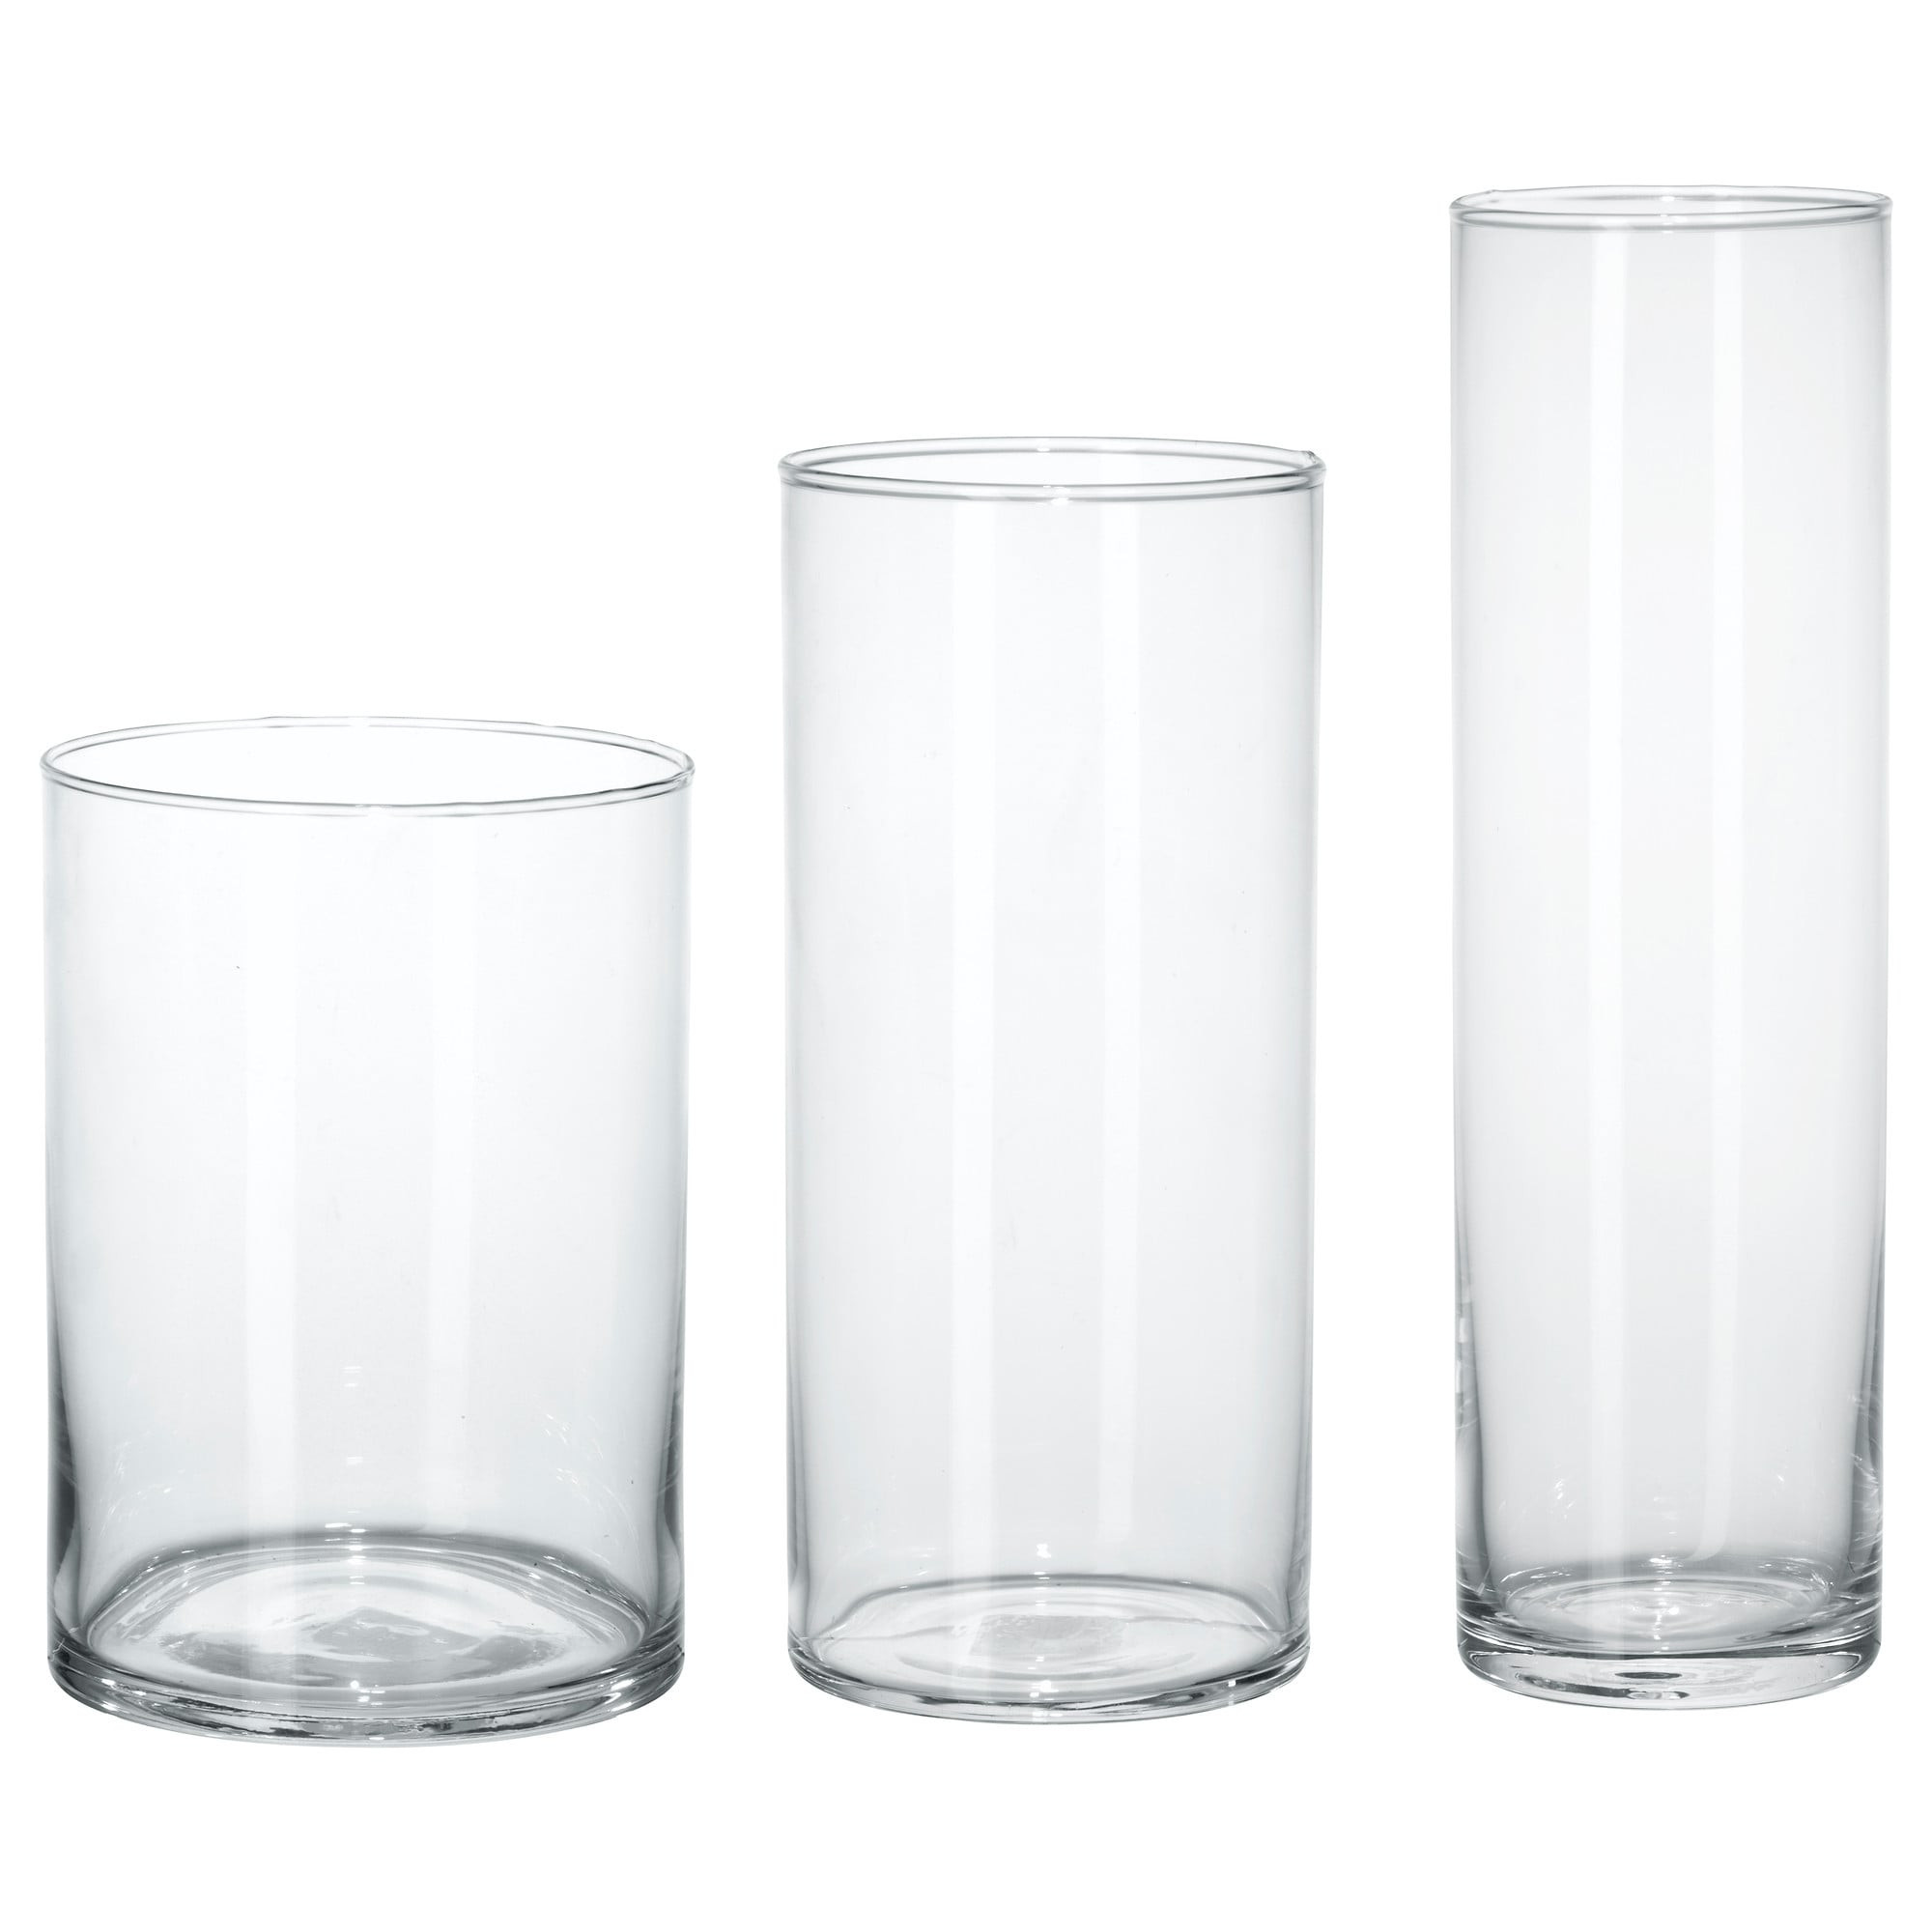 large plastic vases centerpieces of cylinder vase set of 3 ikea in english frana§ais